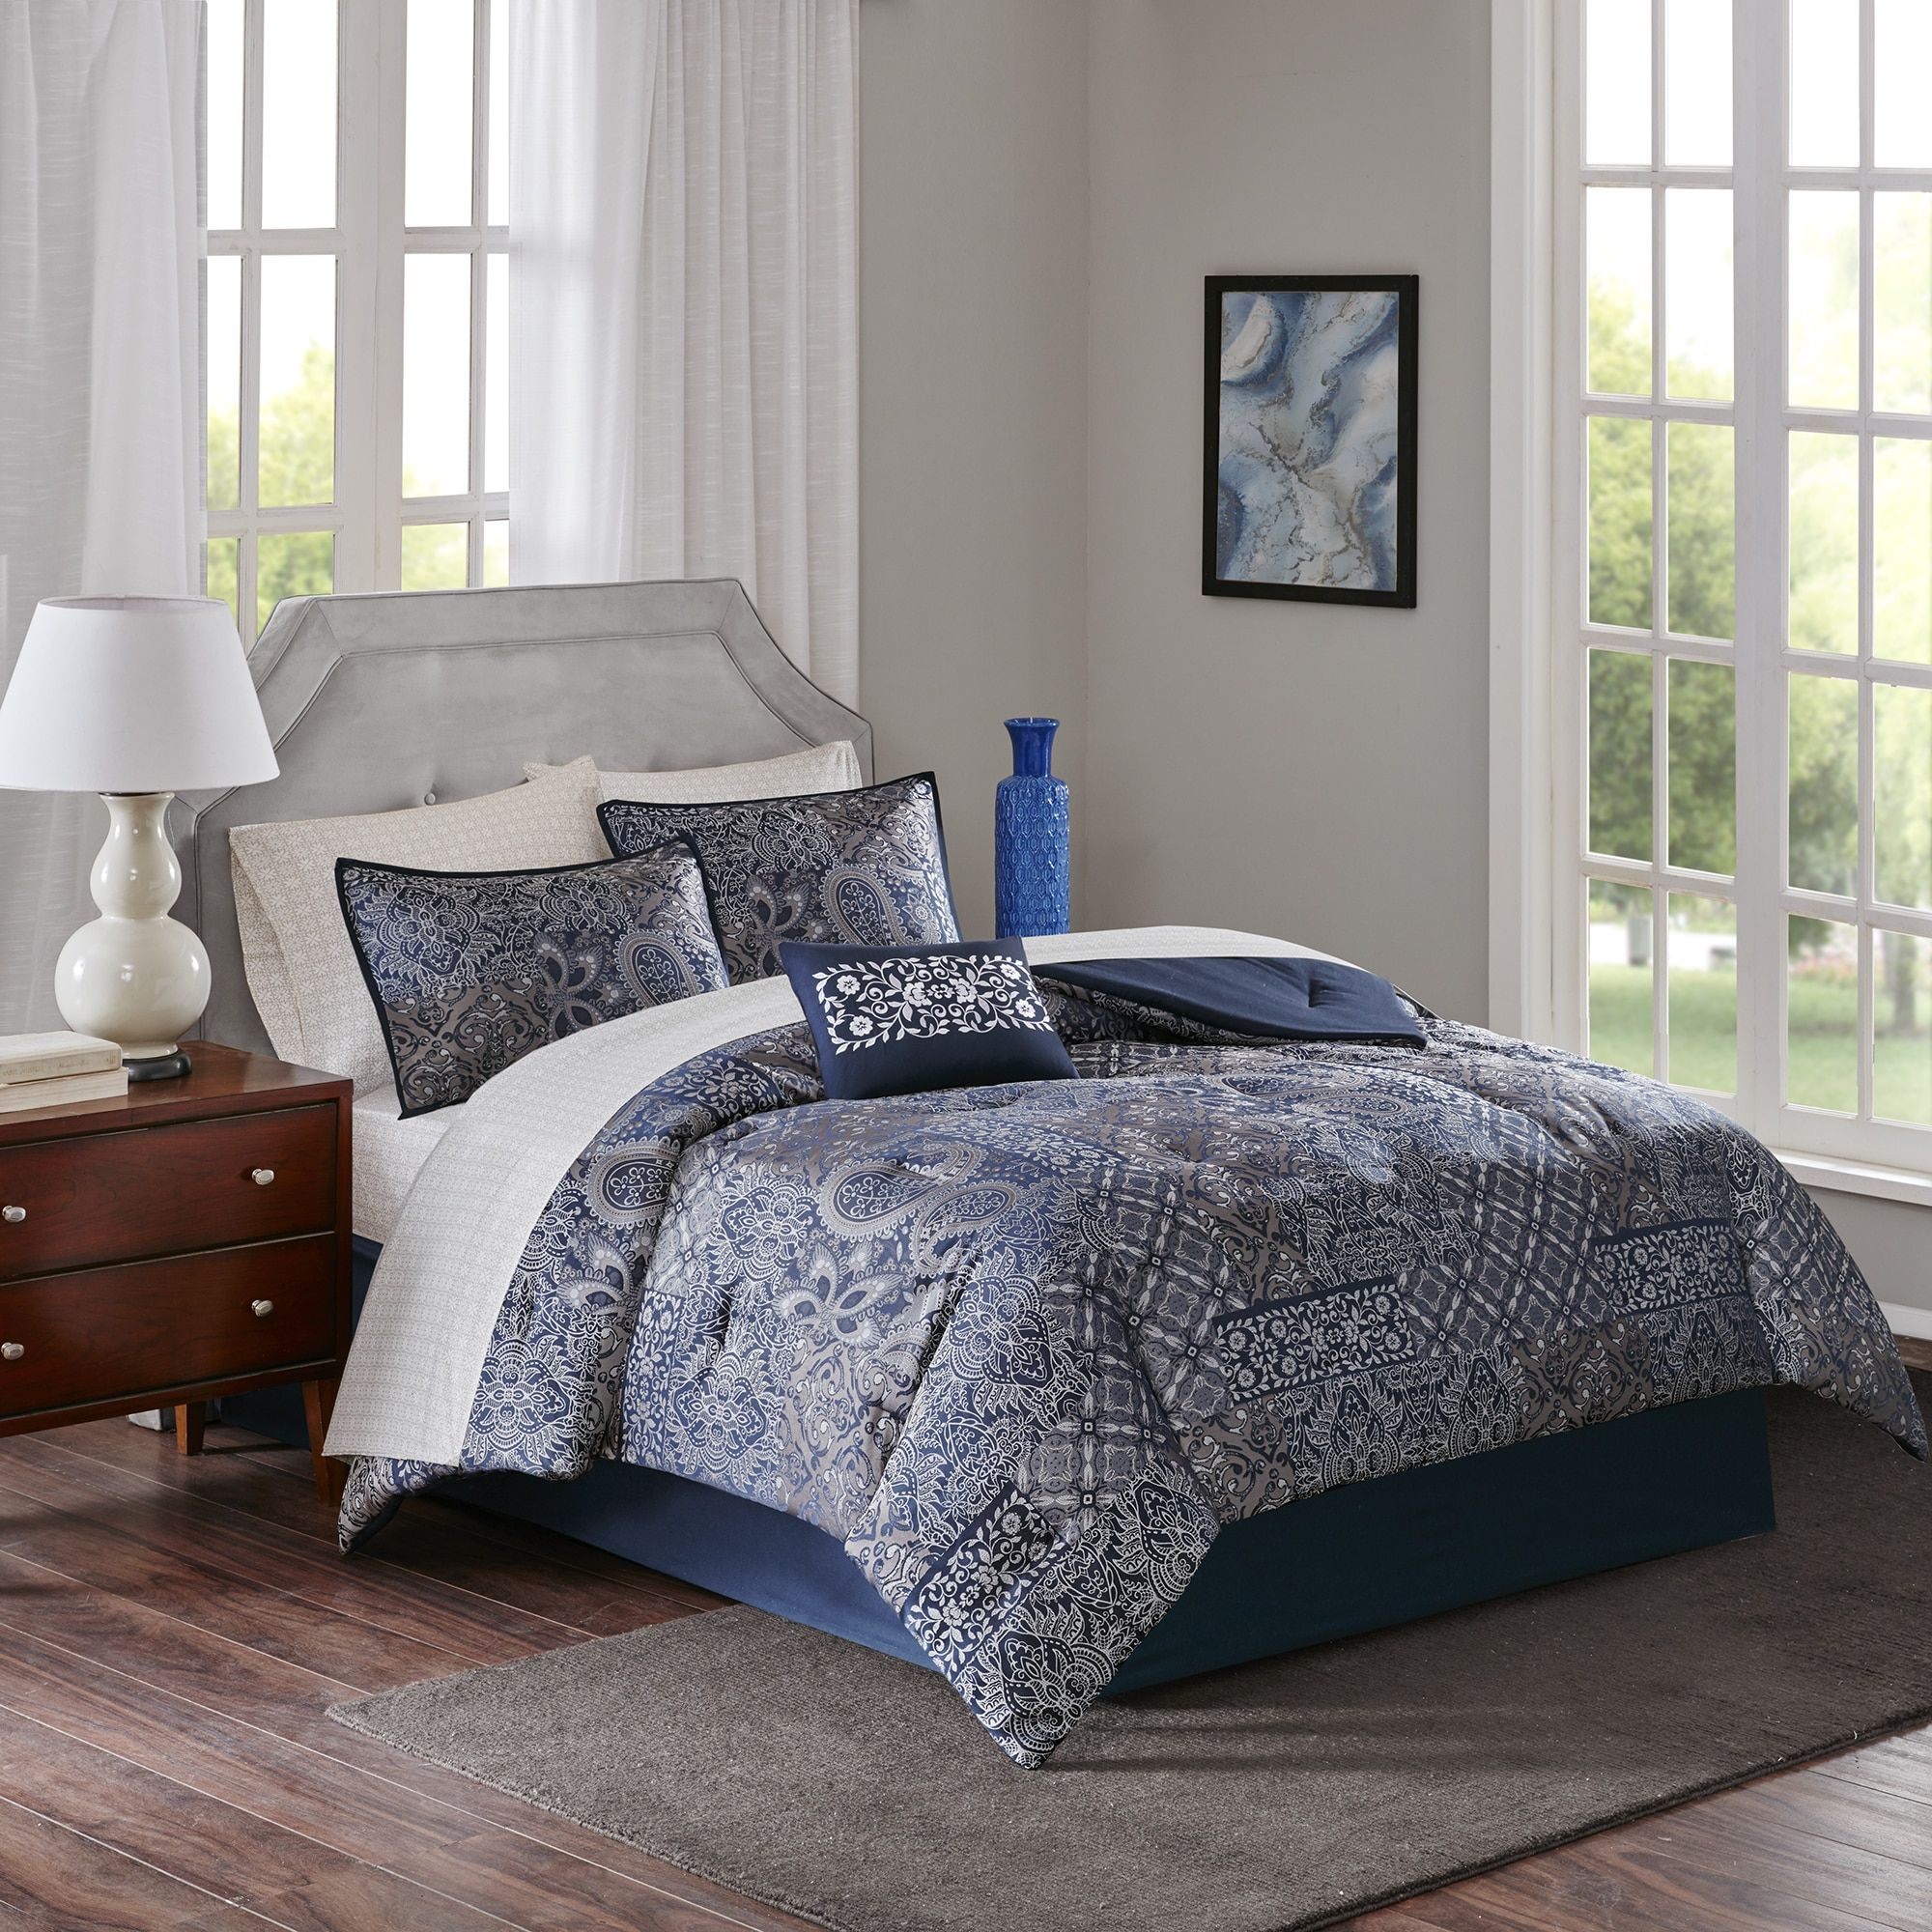 Blue,Queen Comforter Sets: Free Shipping on orders over $45! Bring the comfort in with a new bedding set from Overstock.com Your Online Fashion Bedding Store! Get 5% in rewards with Club O!